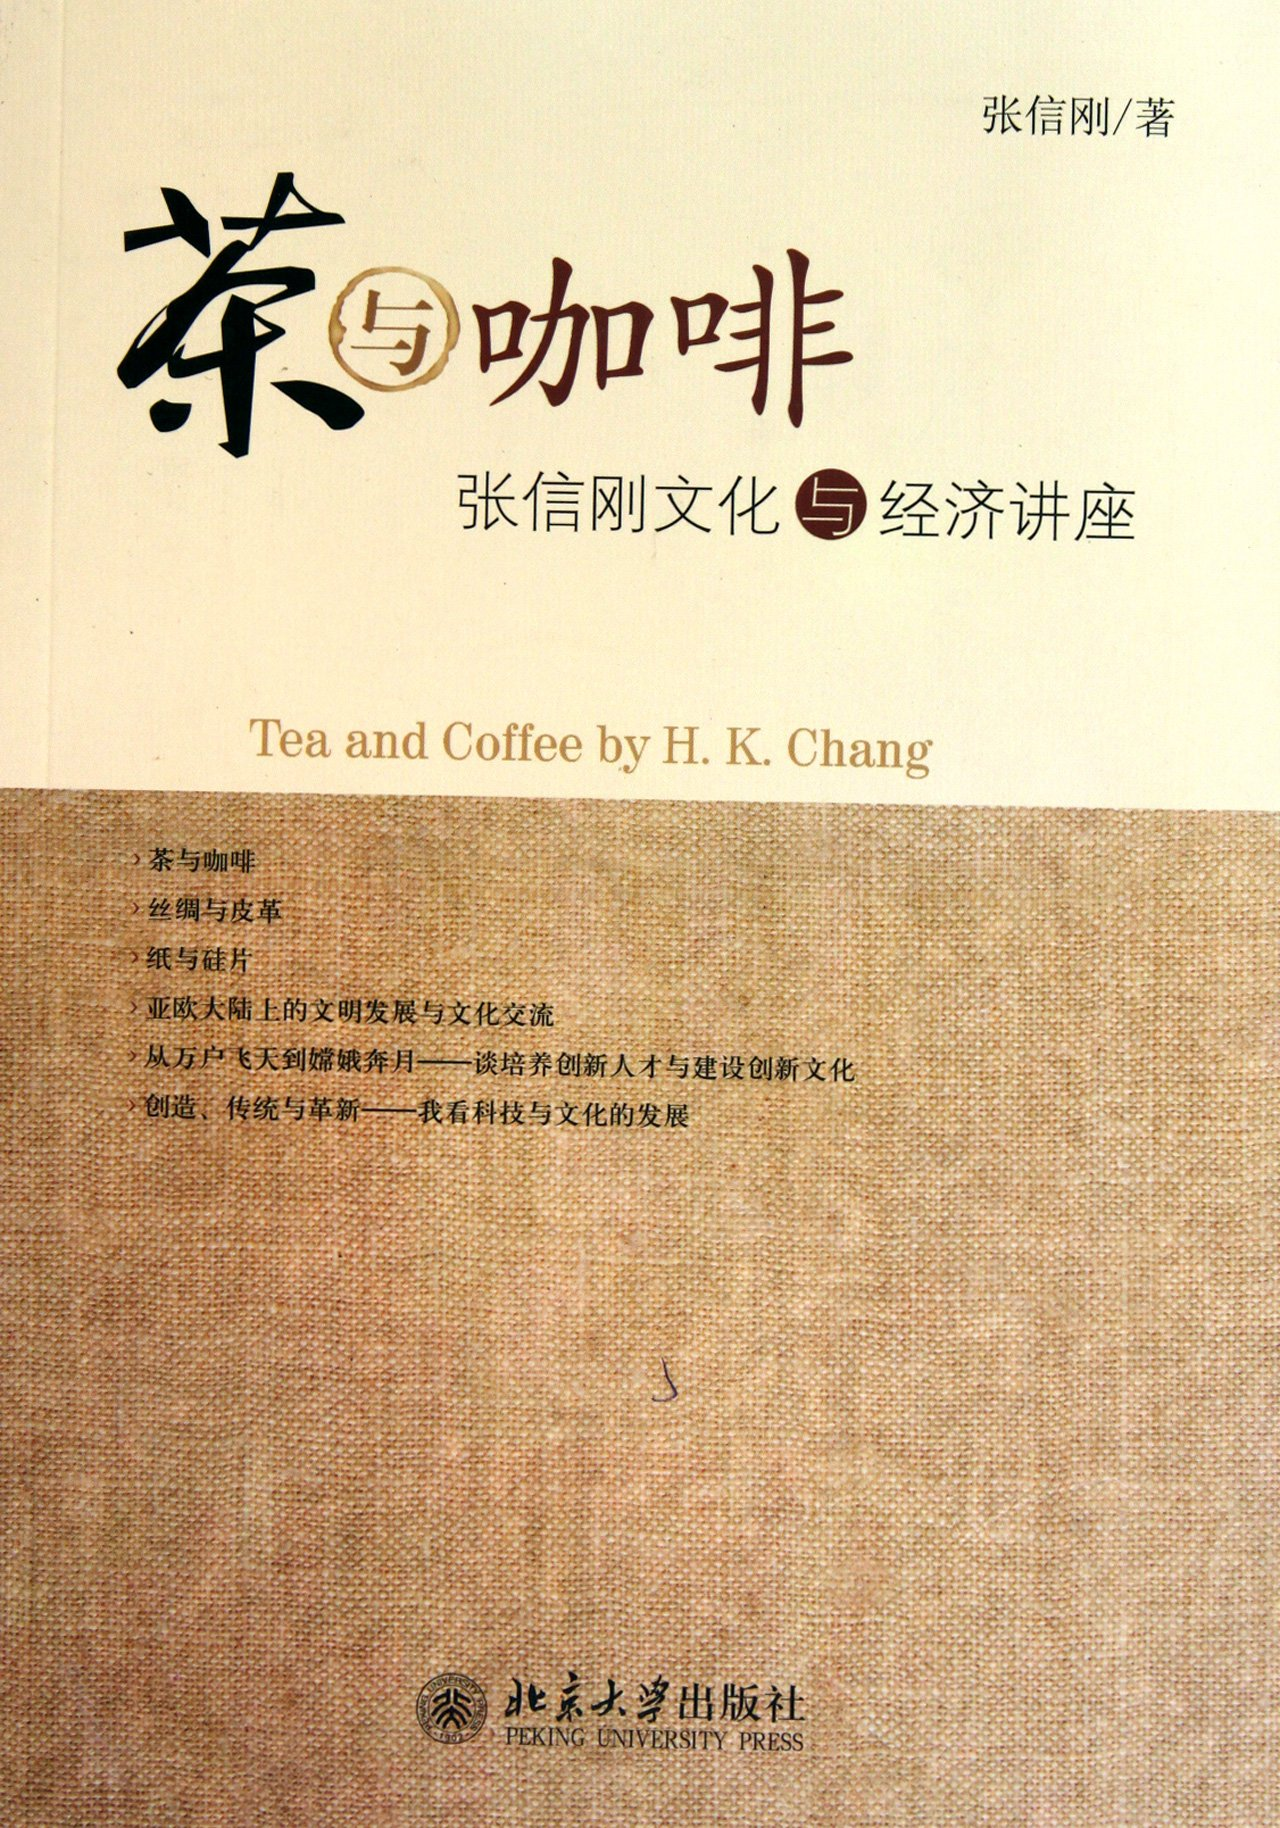 Tea and Coffee-Lectures on Culture and Economy by Zhang Xingang (Chinese Edition) PDF